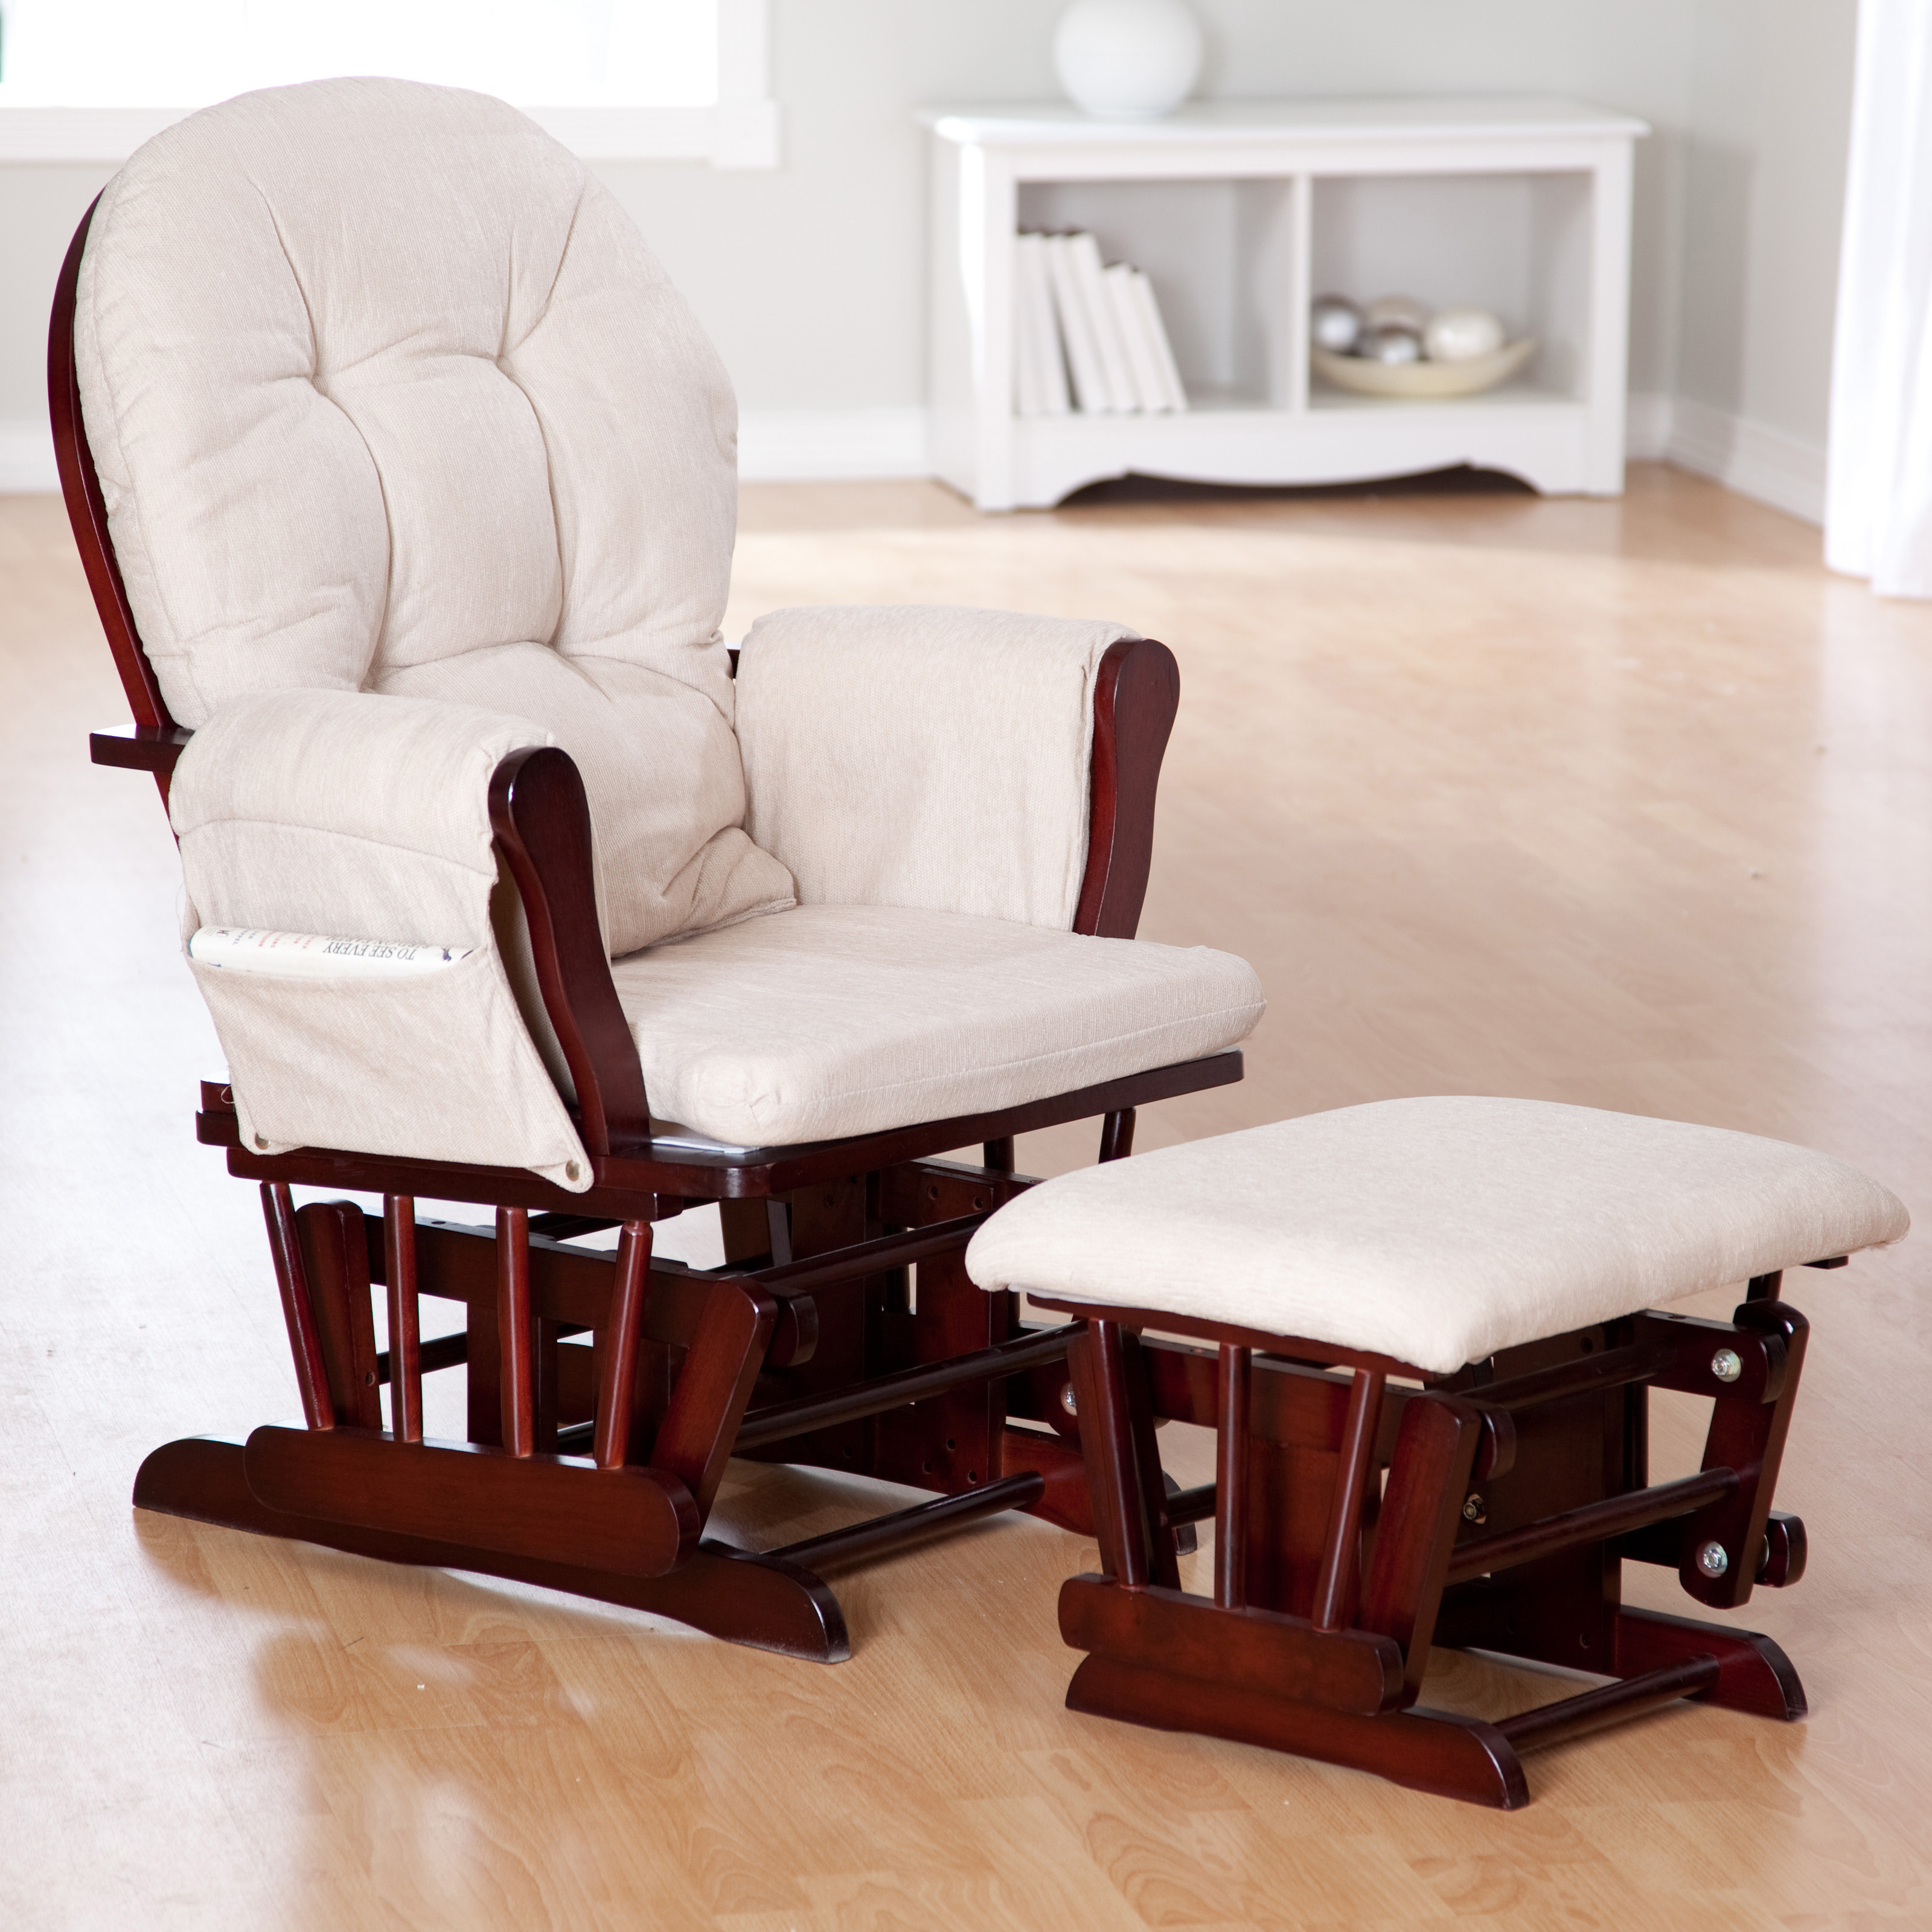 Gliding Rocking Chair Storkcraft Bowback Glider And Ottoman Set Cherry Beige